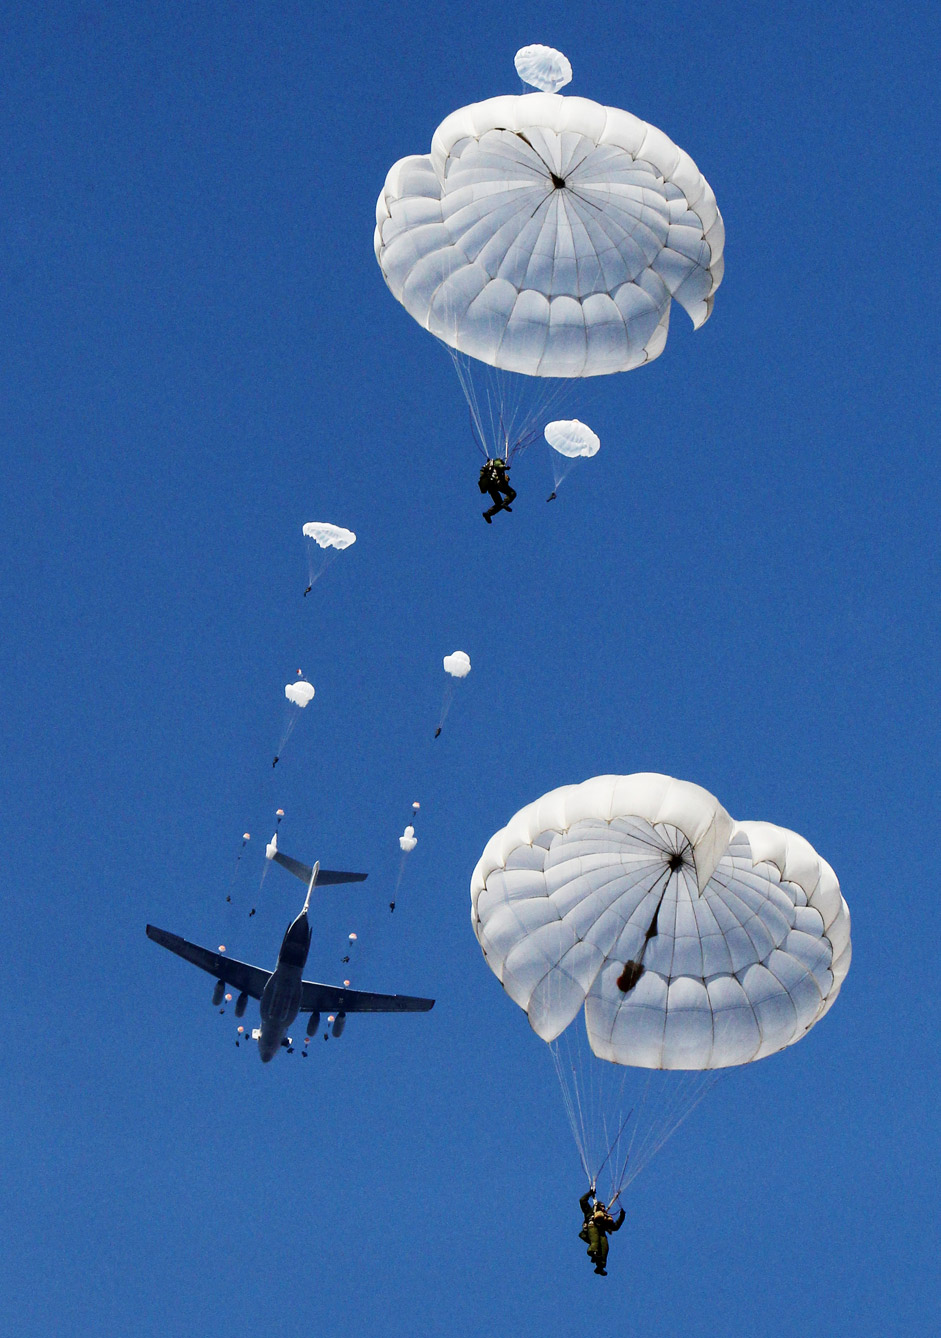 Russian paratroopers during tactical exercises on Sergeev range in Primorsky Territory